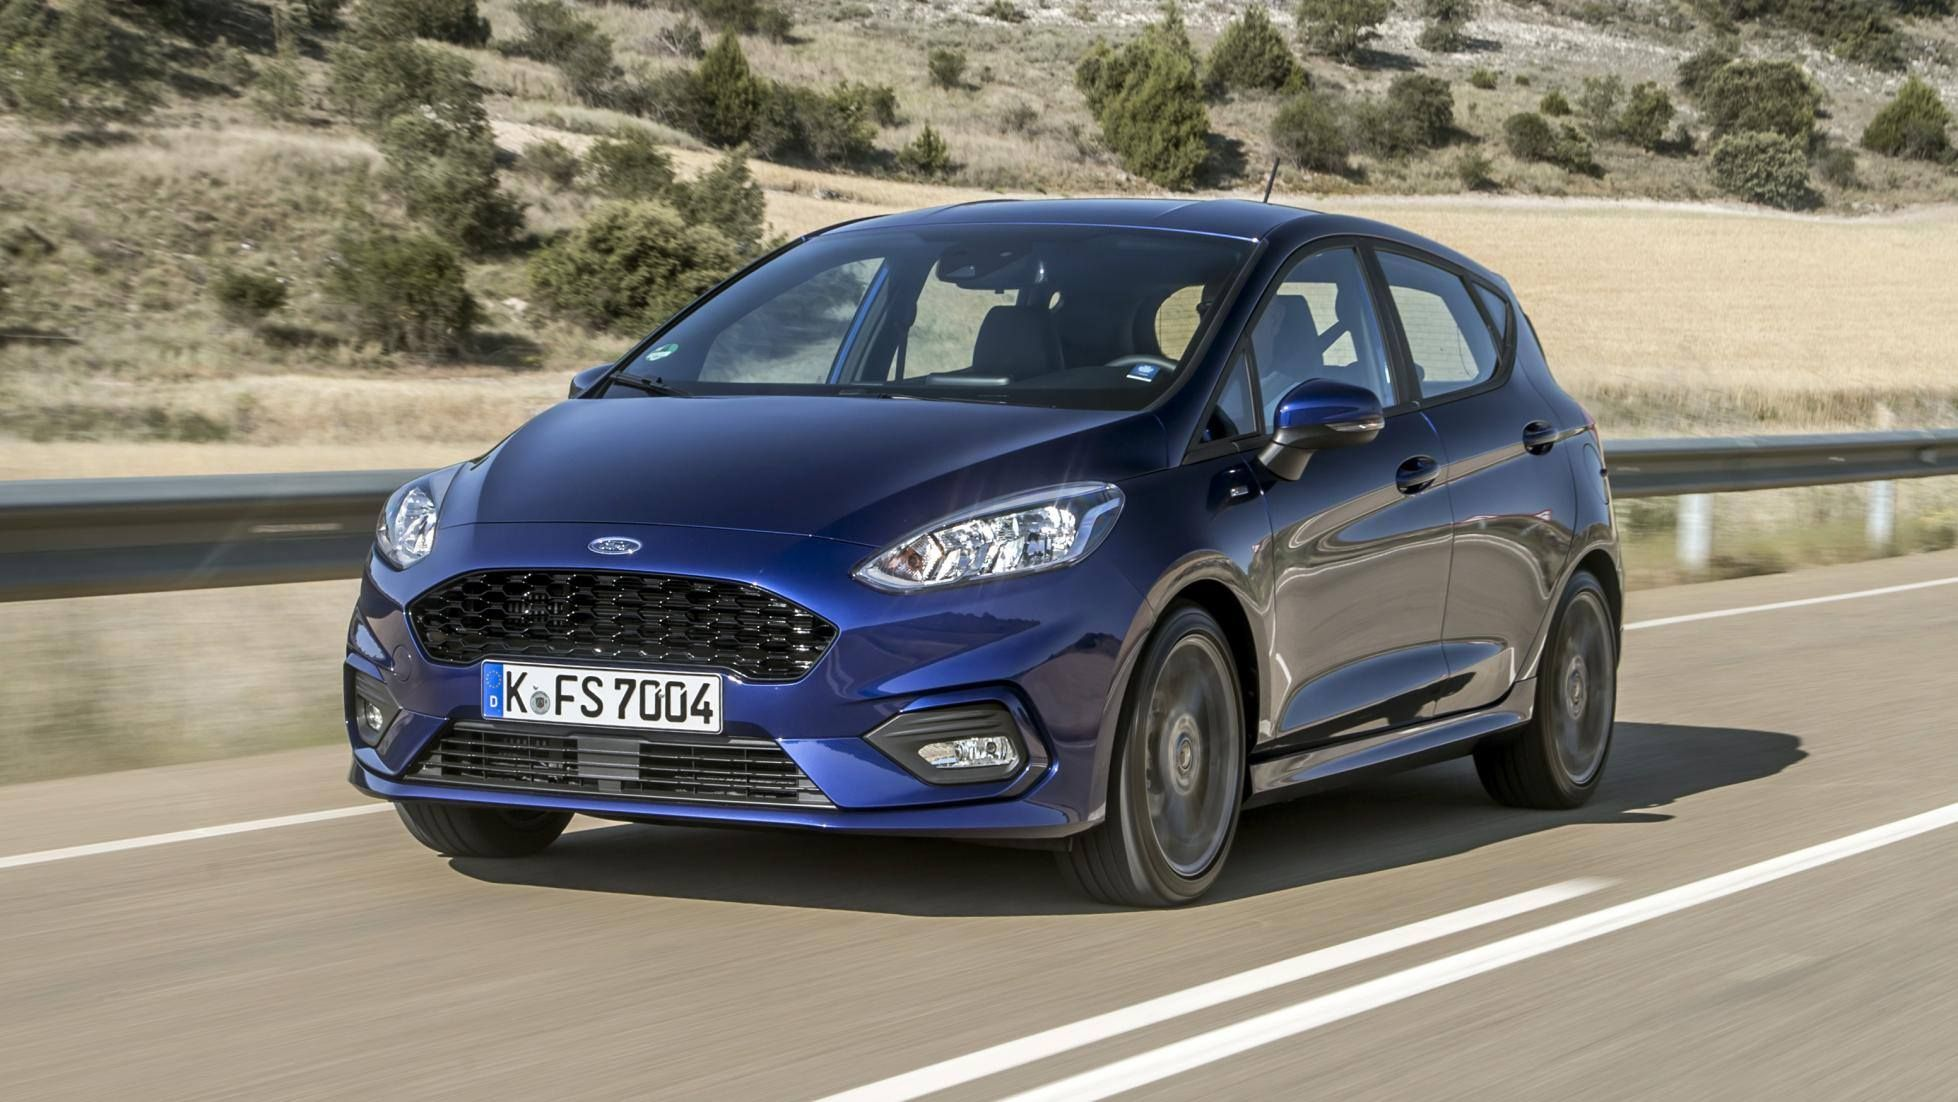 Rivals Have Upped Their Game Does The 2017 Fiesta Still Lead Cardoings Cars Supercars Auto Bmw Audi Mercedes Deals Ford Fiesta Ford Mustang Car Ford